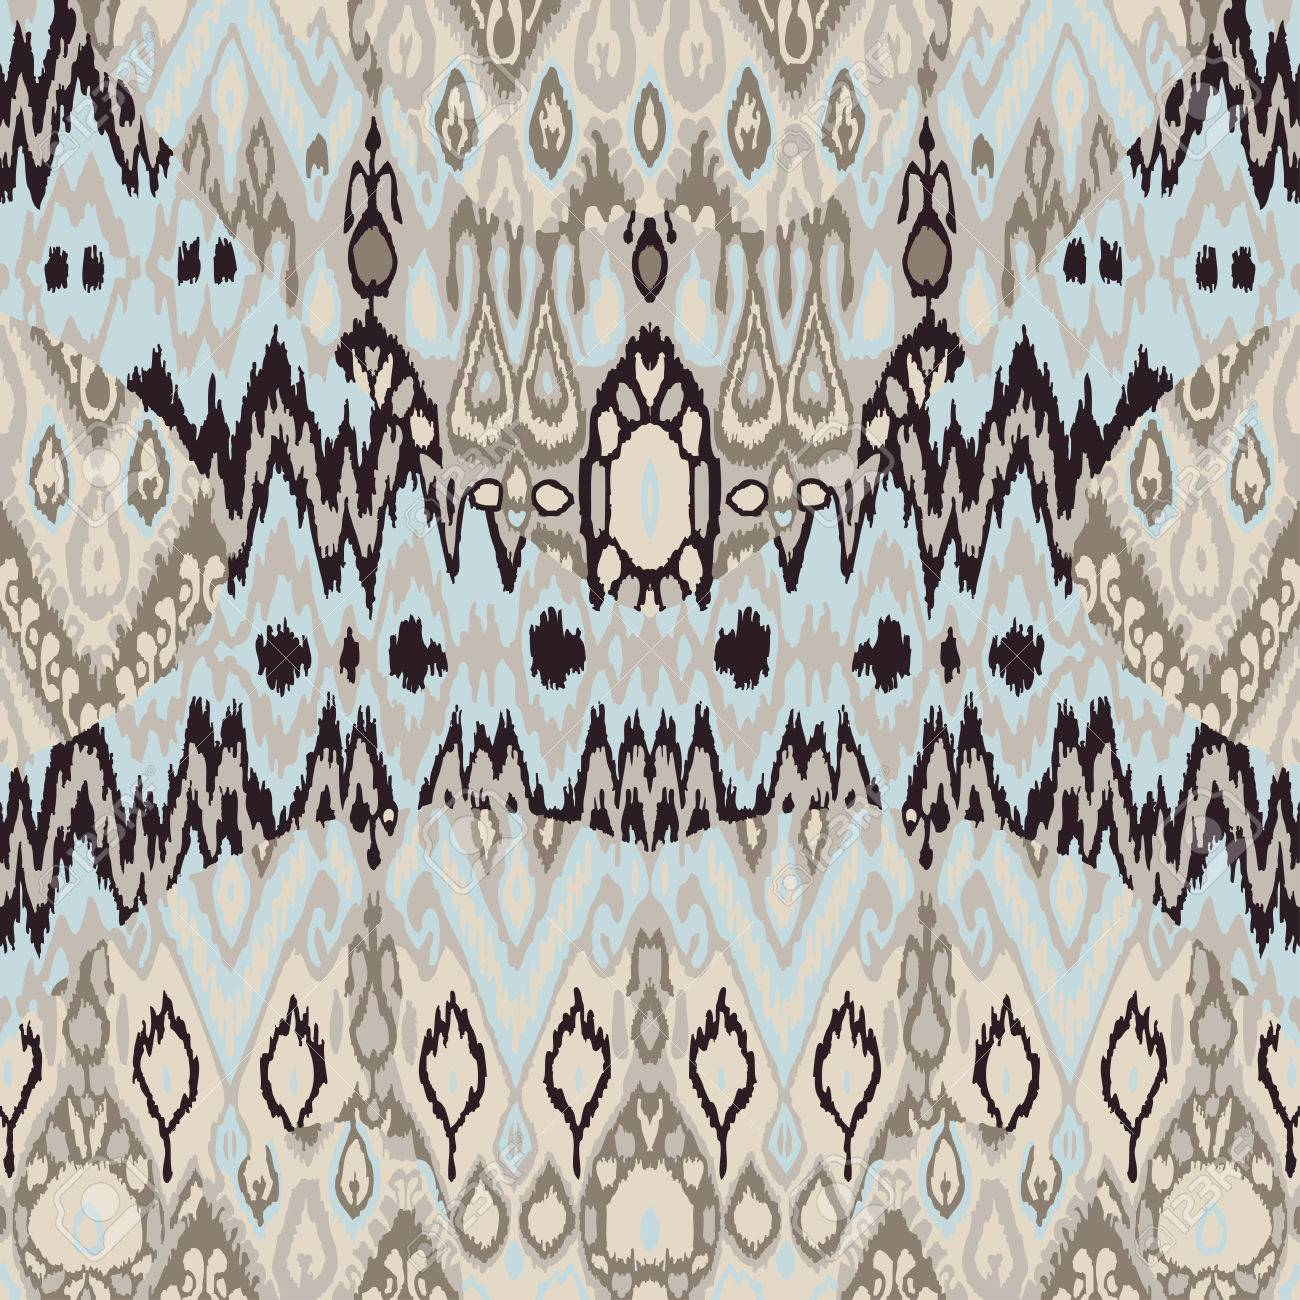 Ethnic Tribal Carpet, Plaid Pattern Fabric Wrapping, Floor Tile ...